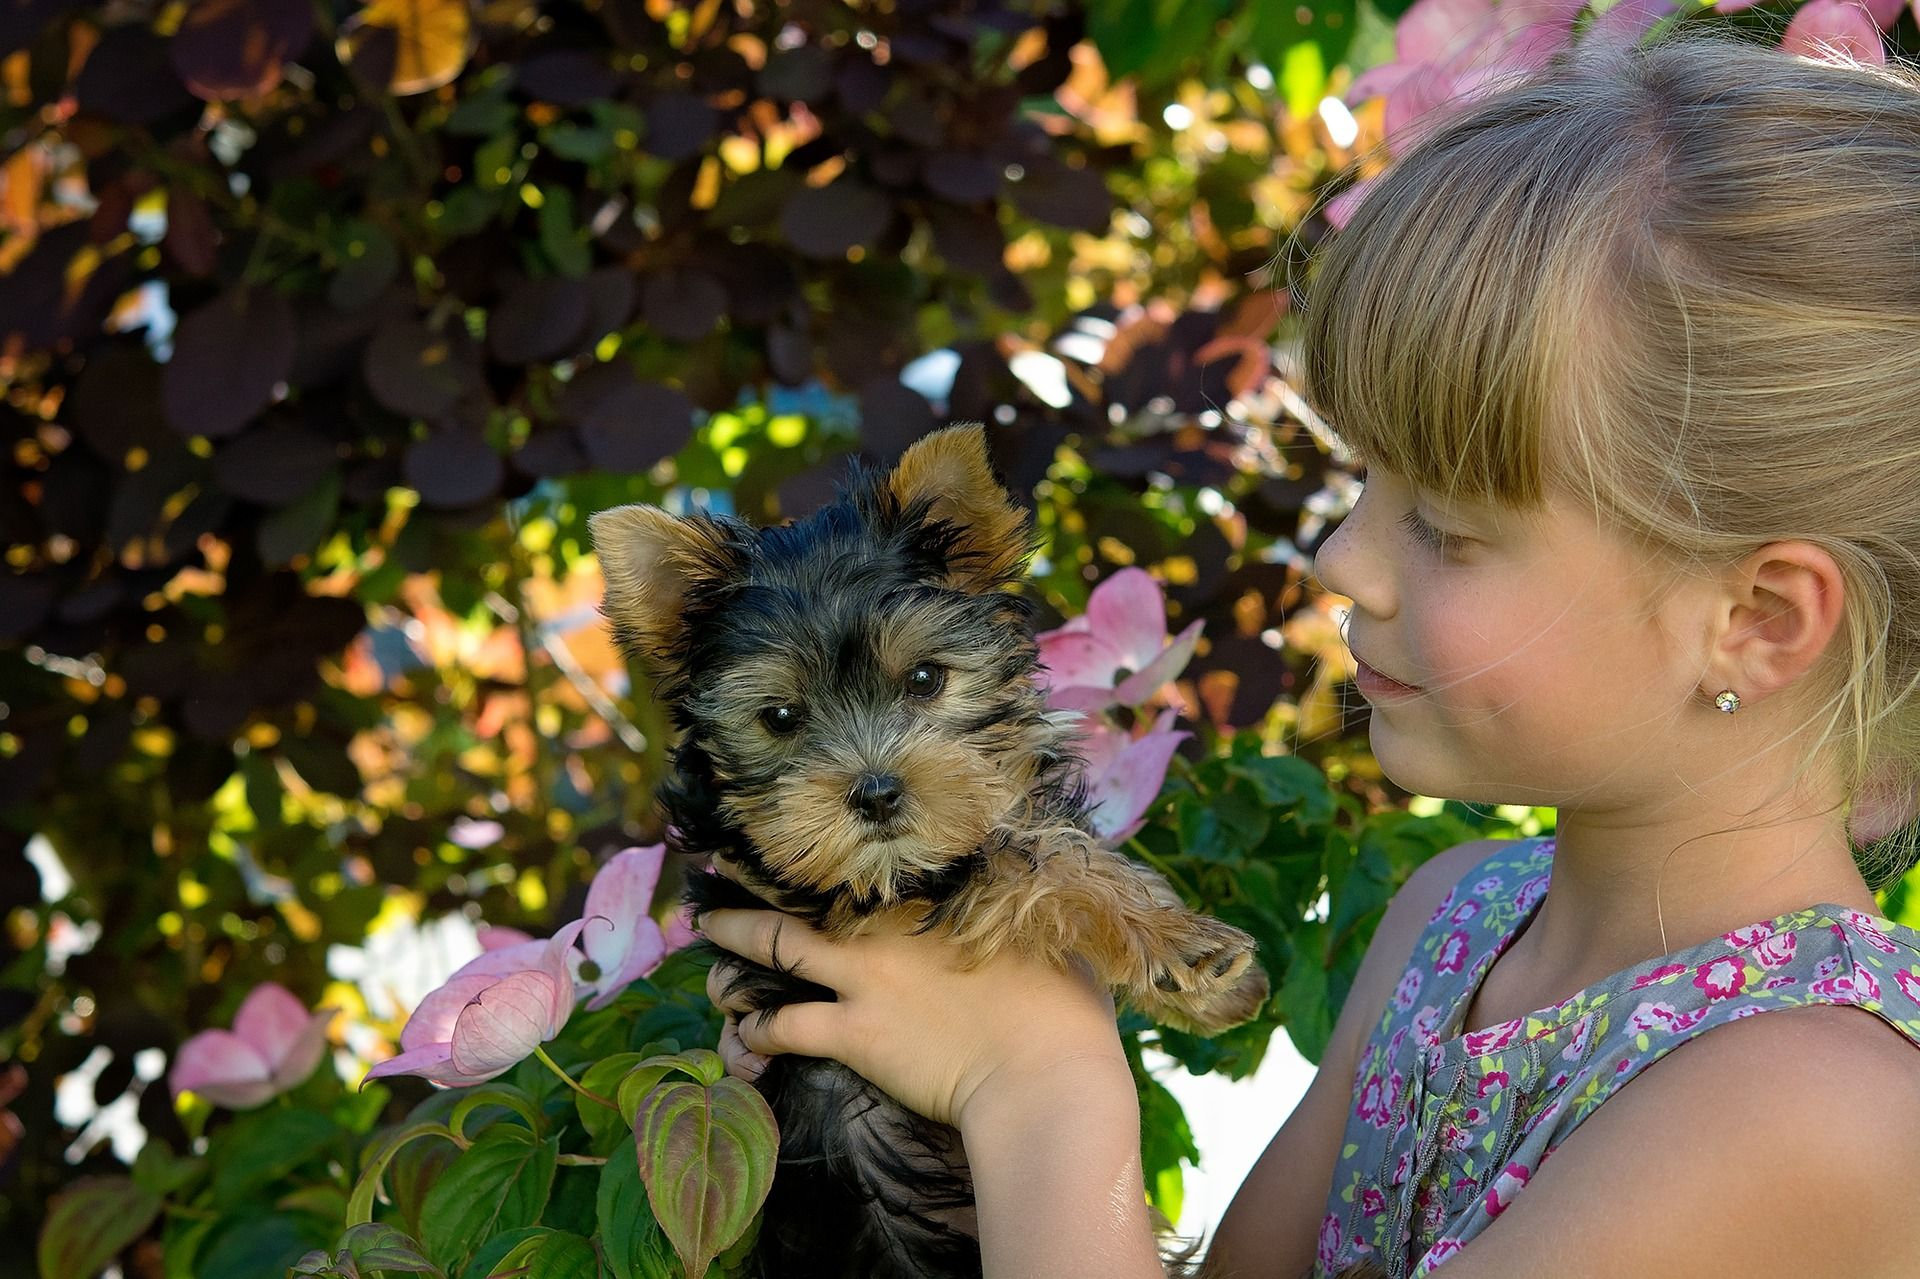 14 Of The Best Small Dog Breeds For Families In 2020 Training Your Dog Yorkshire Terrier Yorkshire Terrier Puppies